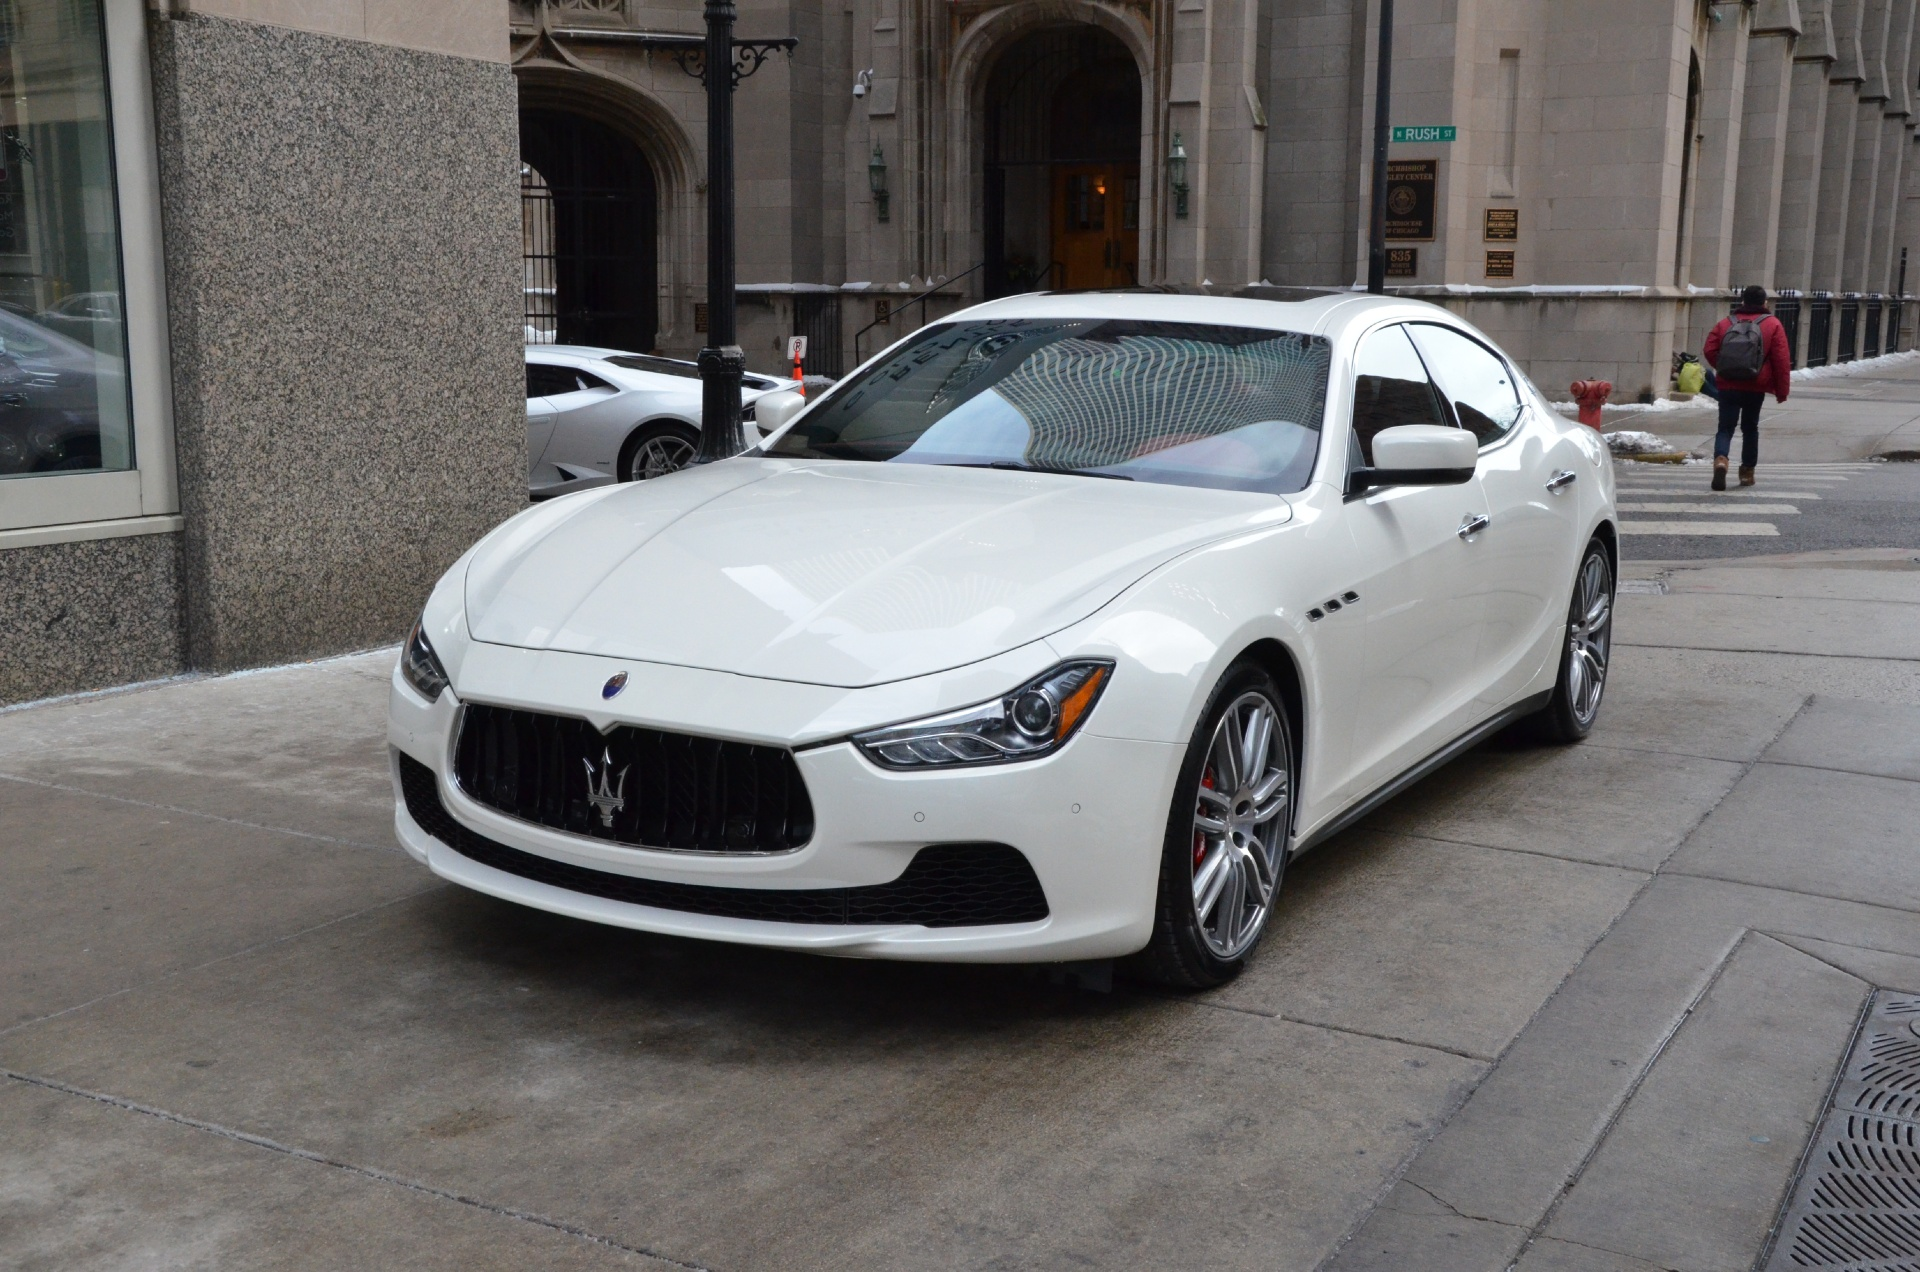 Maserati Q4 Price >> 2015 Maserati Ghibli SQ4 S Q4 Stock # M410-S for sale near Chicago, IL | IL Maserati Dealer